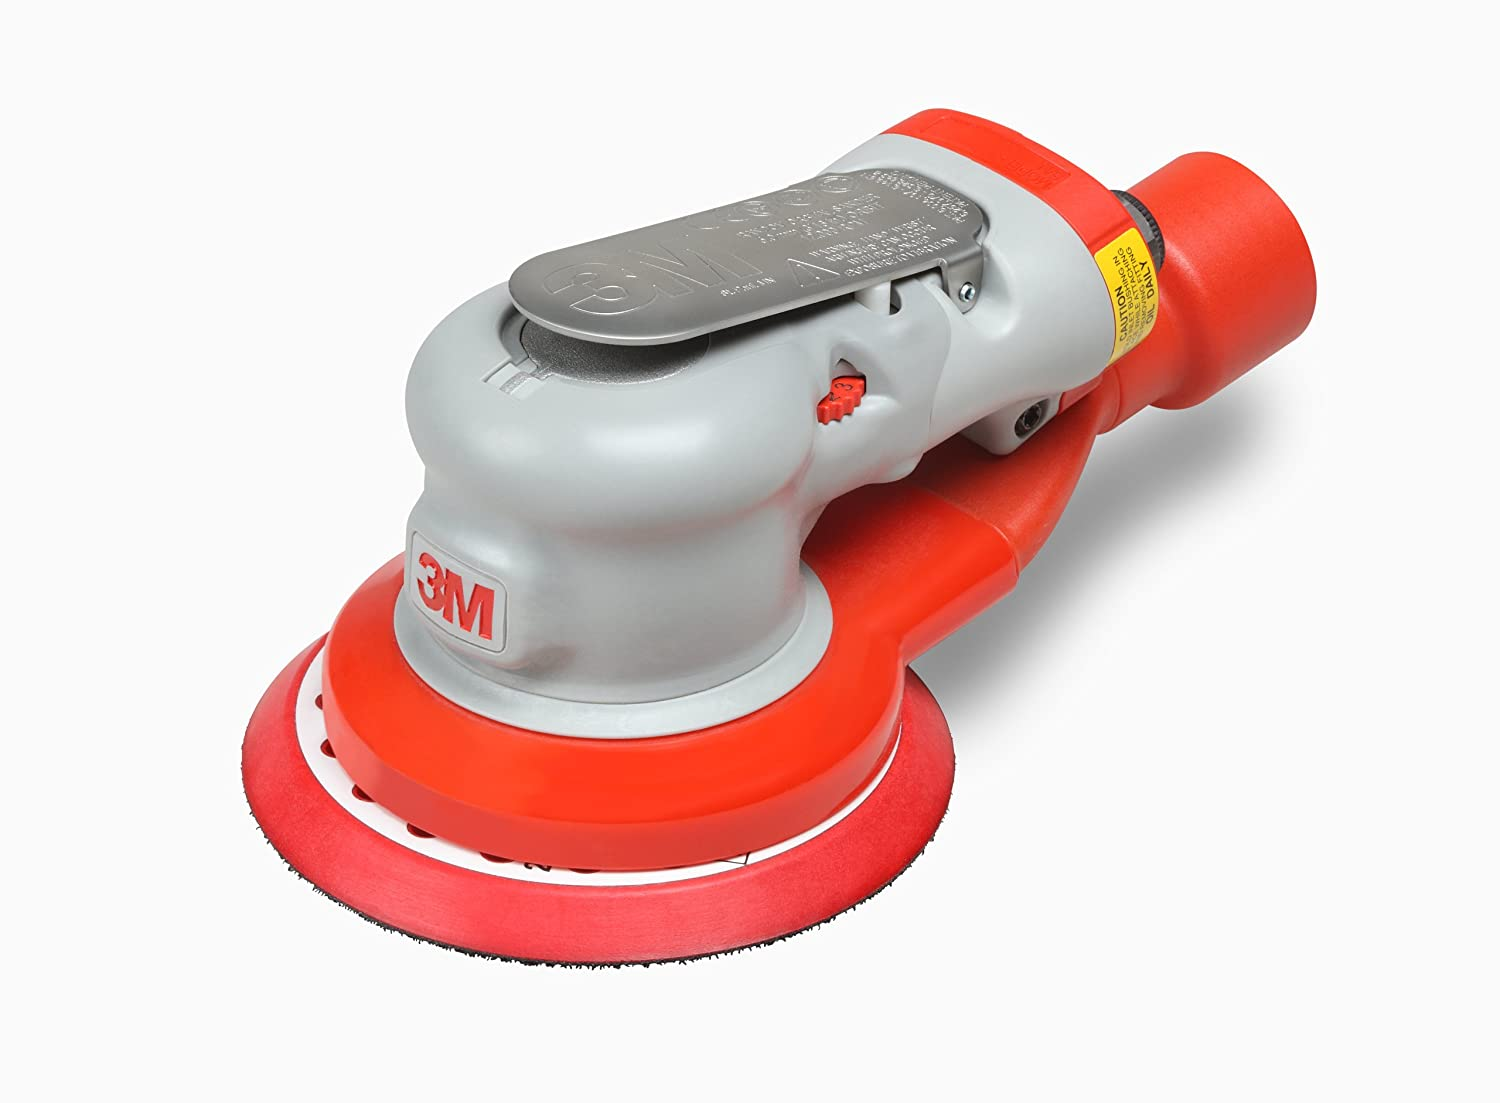 3M Random Orbital Sander – Elite Series 28506, Air-Powered, Central Vacuum, 5 Inch, 3 16 Orbit